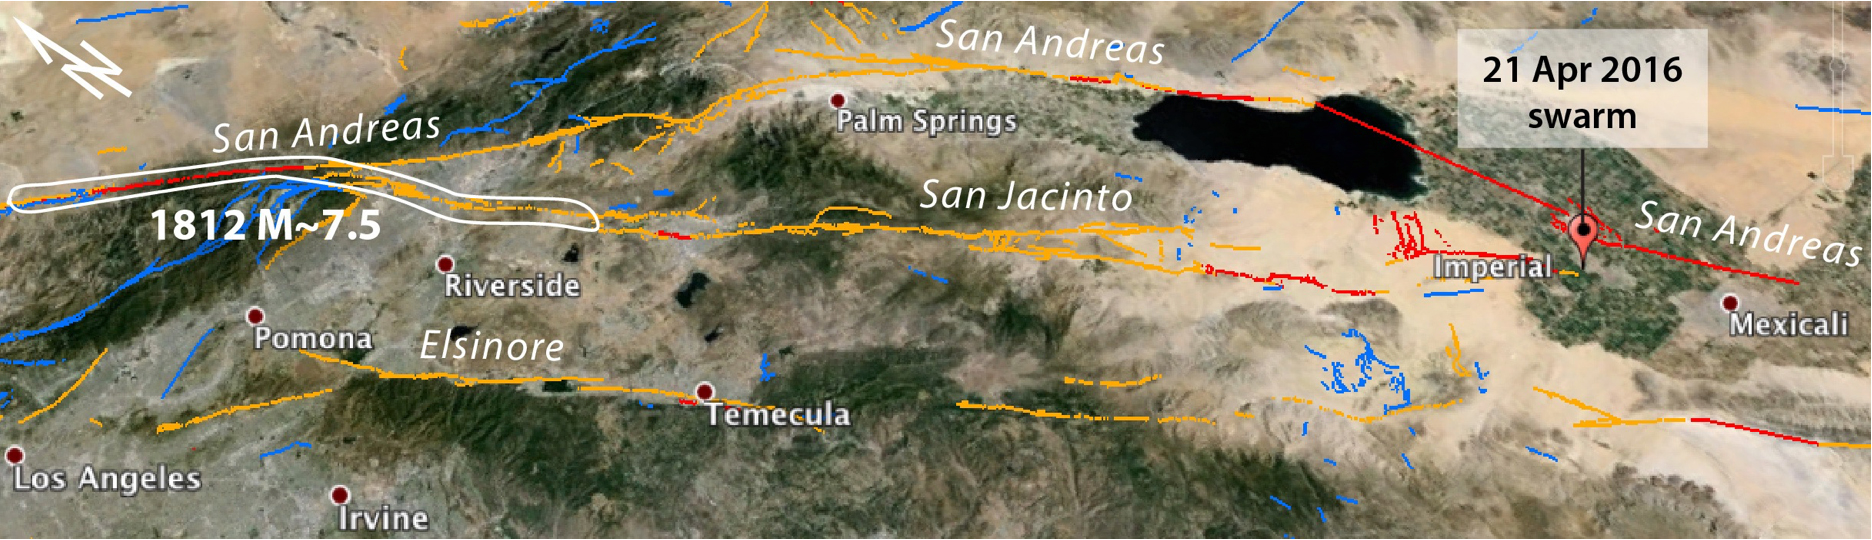 In this Google Earth image, the sites where the San Andreas and San Jacinto systems diverge (north of Riverside) and converge (south of Imperial) are seen. Julian Lozos' interpretation of the 1812 rupture is also shown. This event collapsed or highly damaged Missions San Juan Capistrano and San Gabriel, and caused minor damage at Missions San Fernando and San Buenaventura. The image is 325 km (175 mi) across.